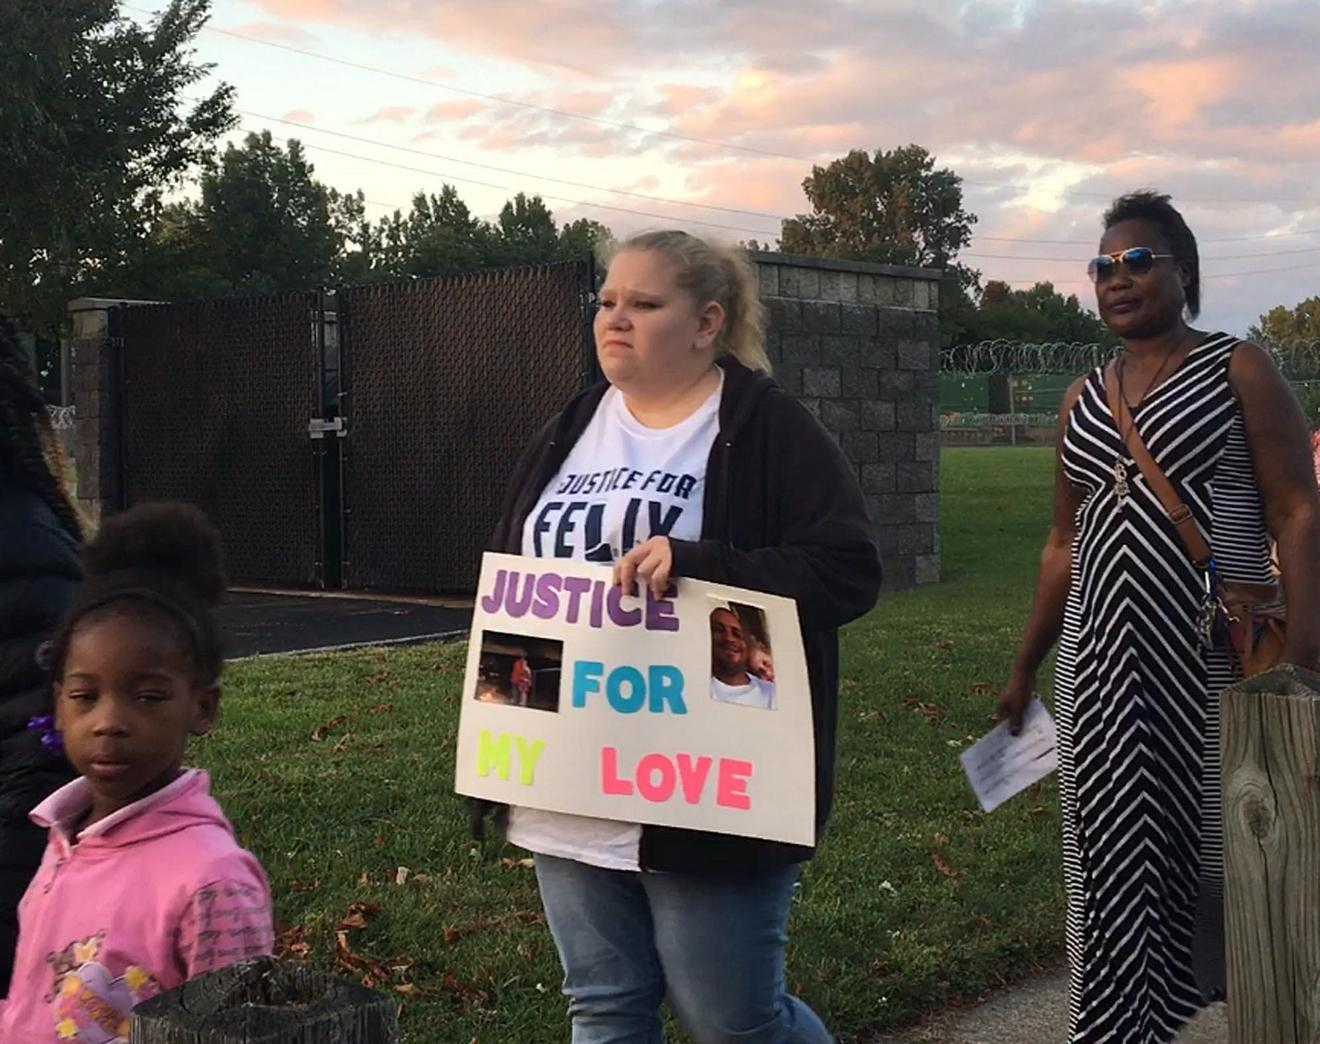 Amanda Tucholski, Felix Manus' longtime girlfriend, participates in a silent march in front of the Erie County work-release center, 450 E. 16th St., as part of a vigil in honor of Manus. Manus died June 11 after suffering an asthma attack during a work-release shift on May 30. [MADELEINE O'NEILL/ERIE TIMES-NEWS]